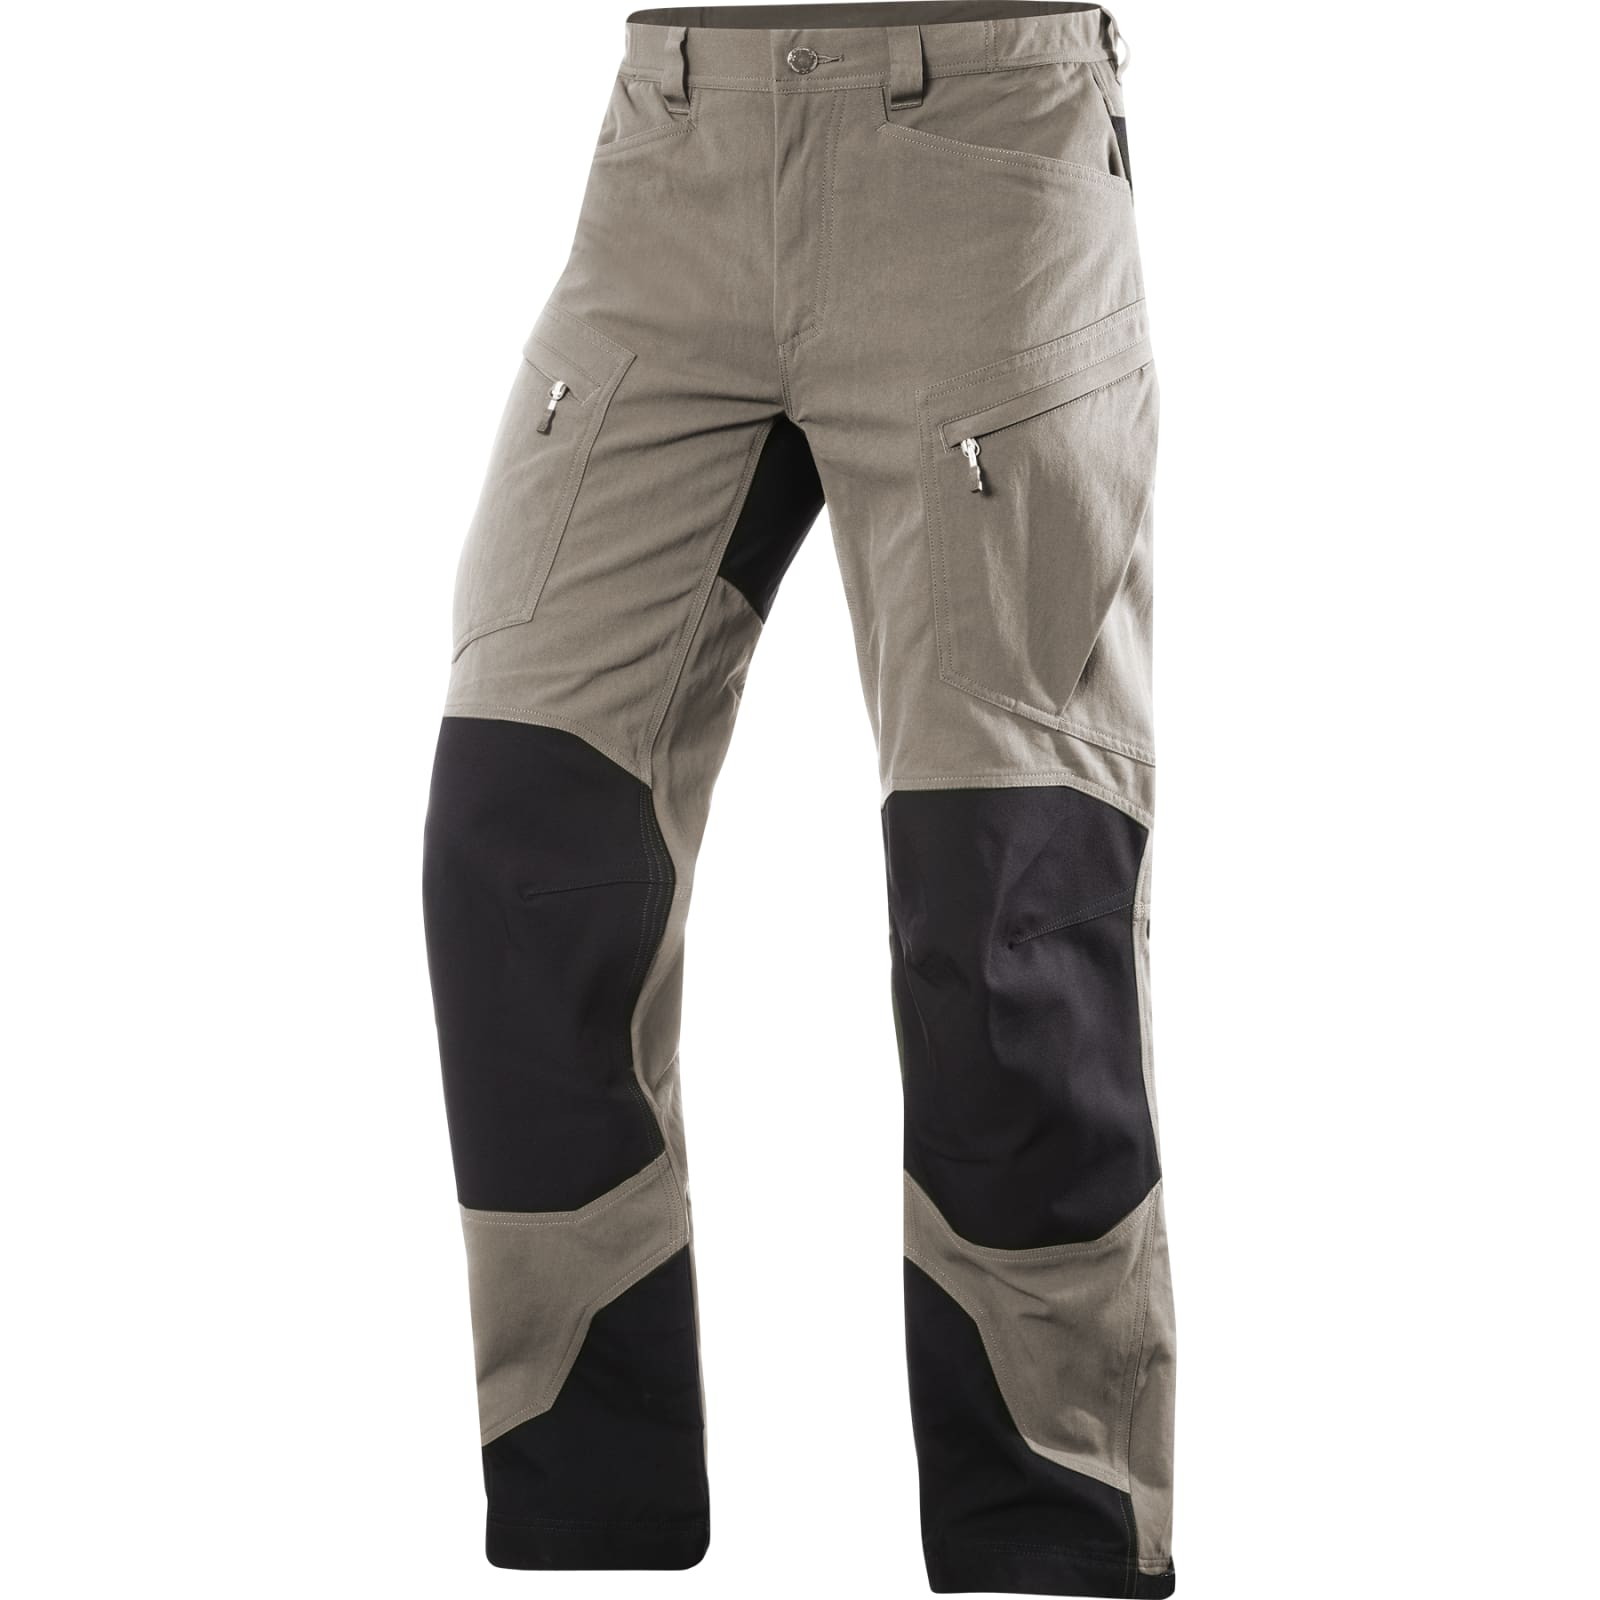 Buy Haglofs Rugged Mountain Pant From Outnorth